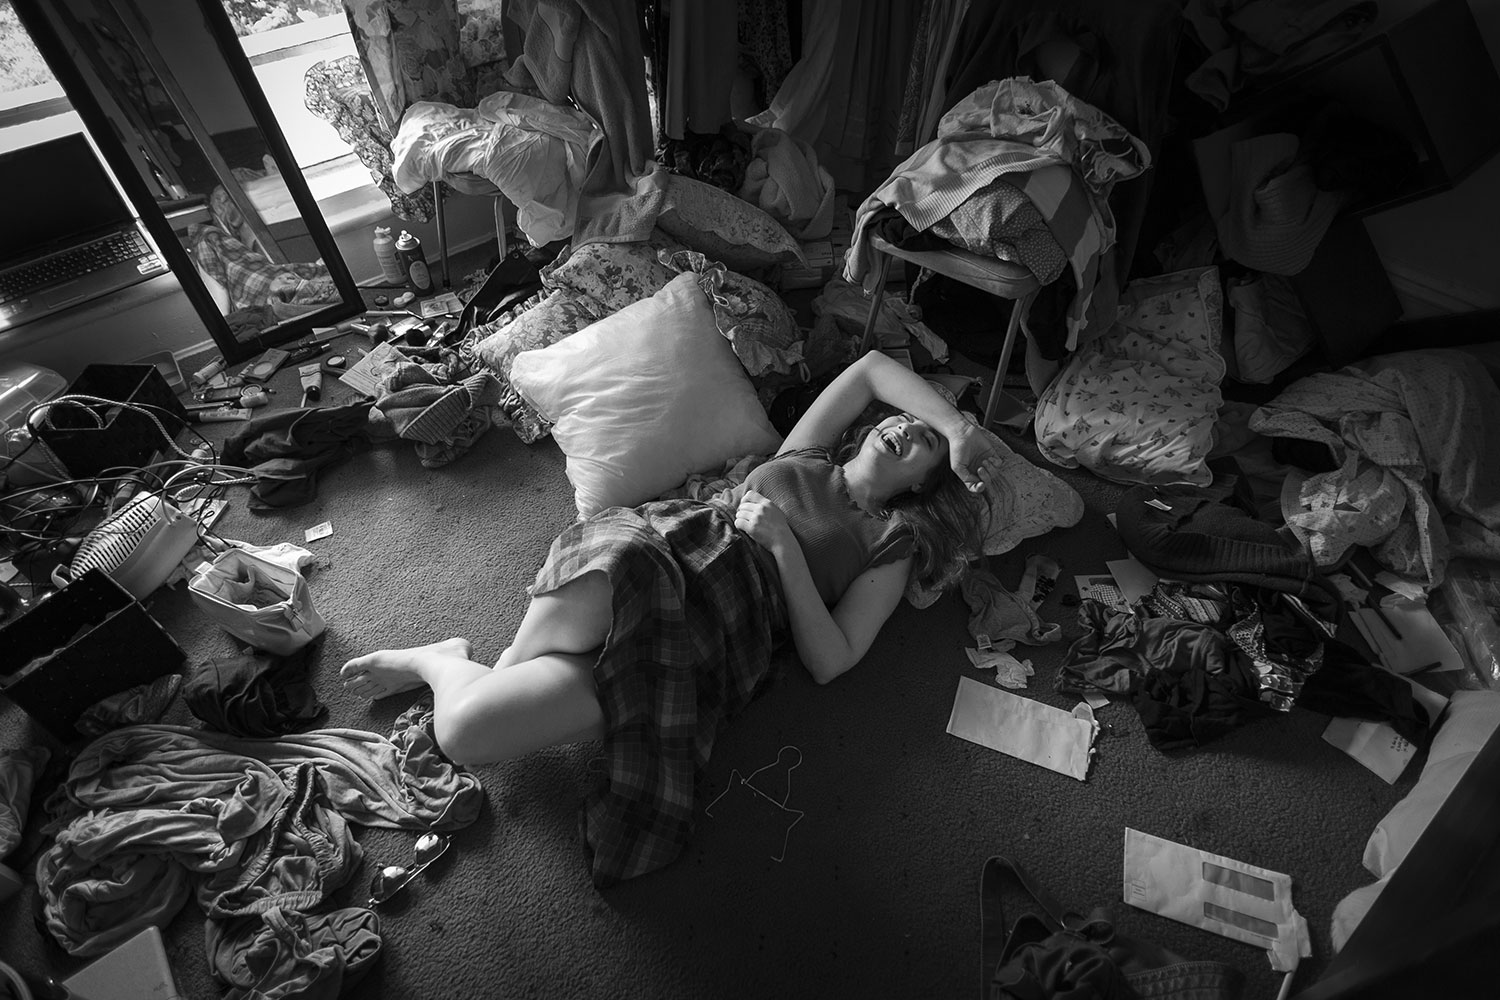 Casey in her messy room.